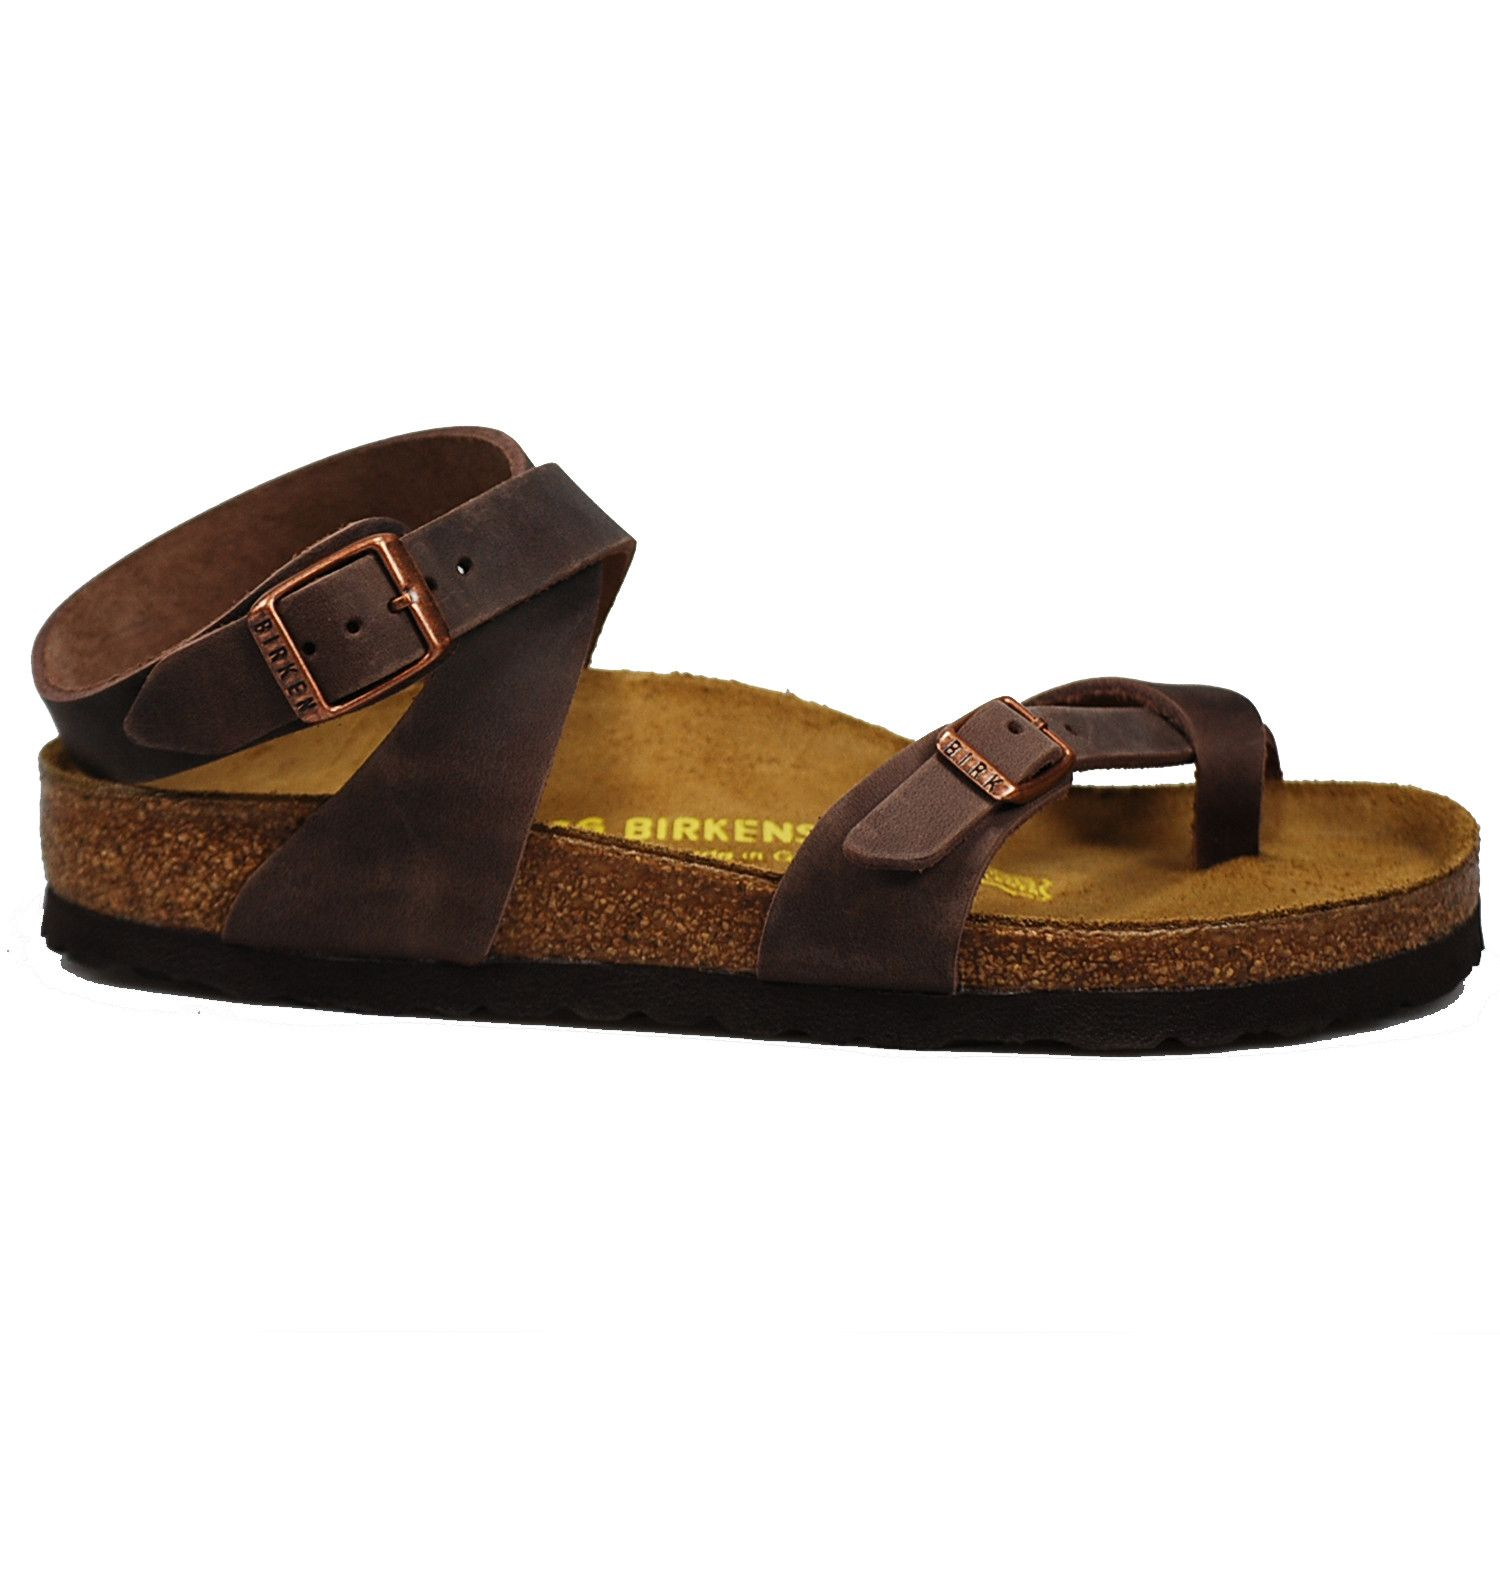 Birkenstock Womens ARIZONA Leather Open Toe Casual Slide Brown Size 80